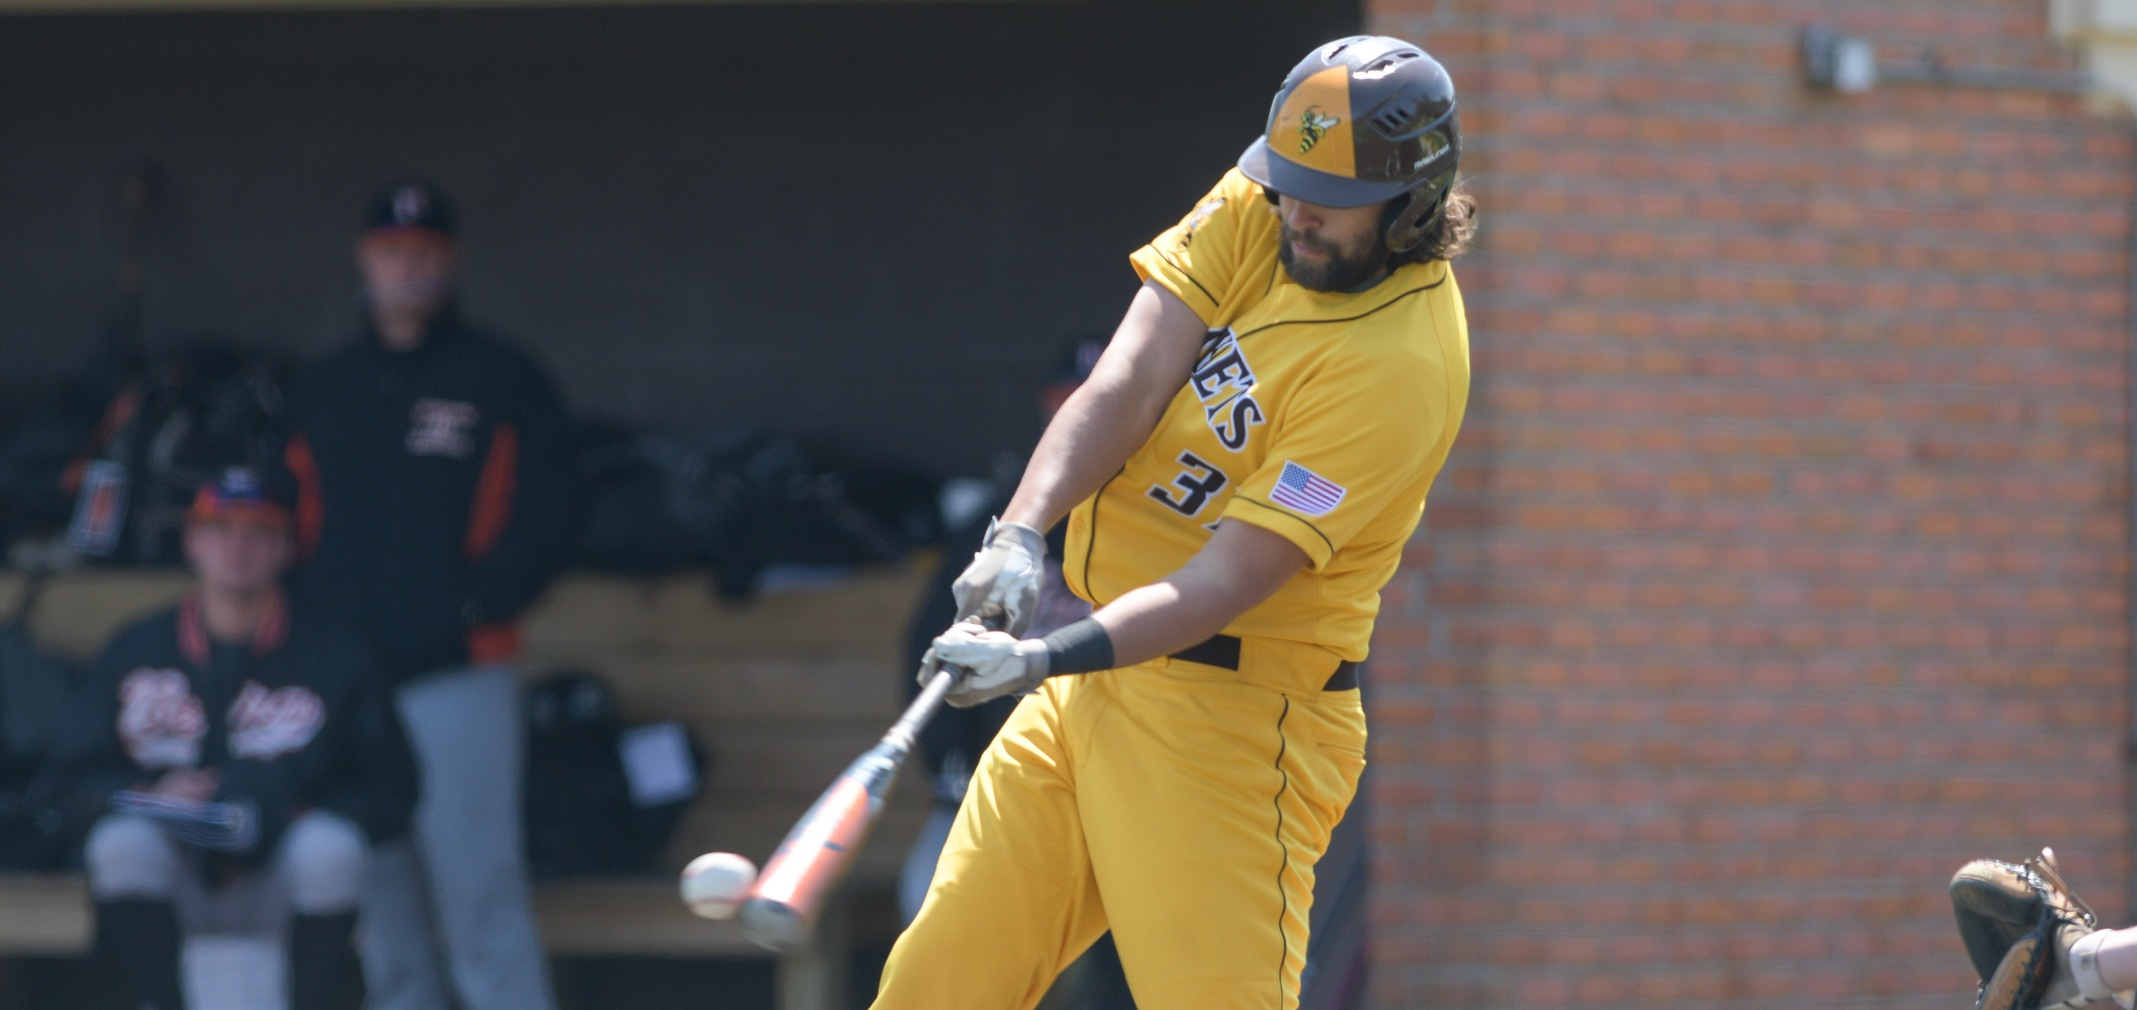 Junior designated hitter Philip Wells hit two doubles and had three RBIs in the NCAA Tournament game against Swarthmore (Photo courtesy of Jesse Kucewicz)